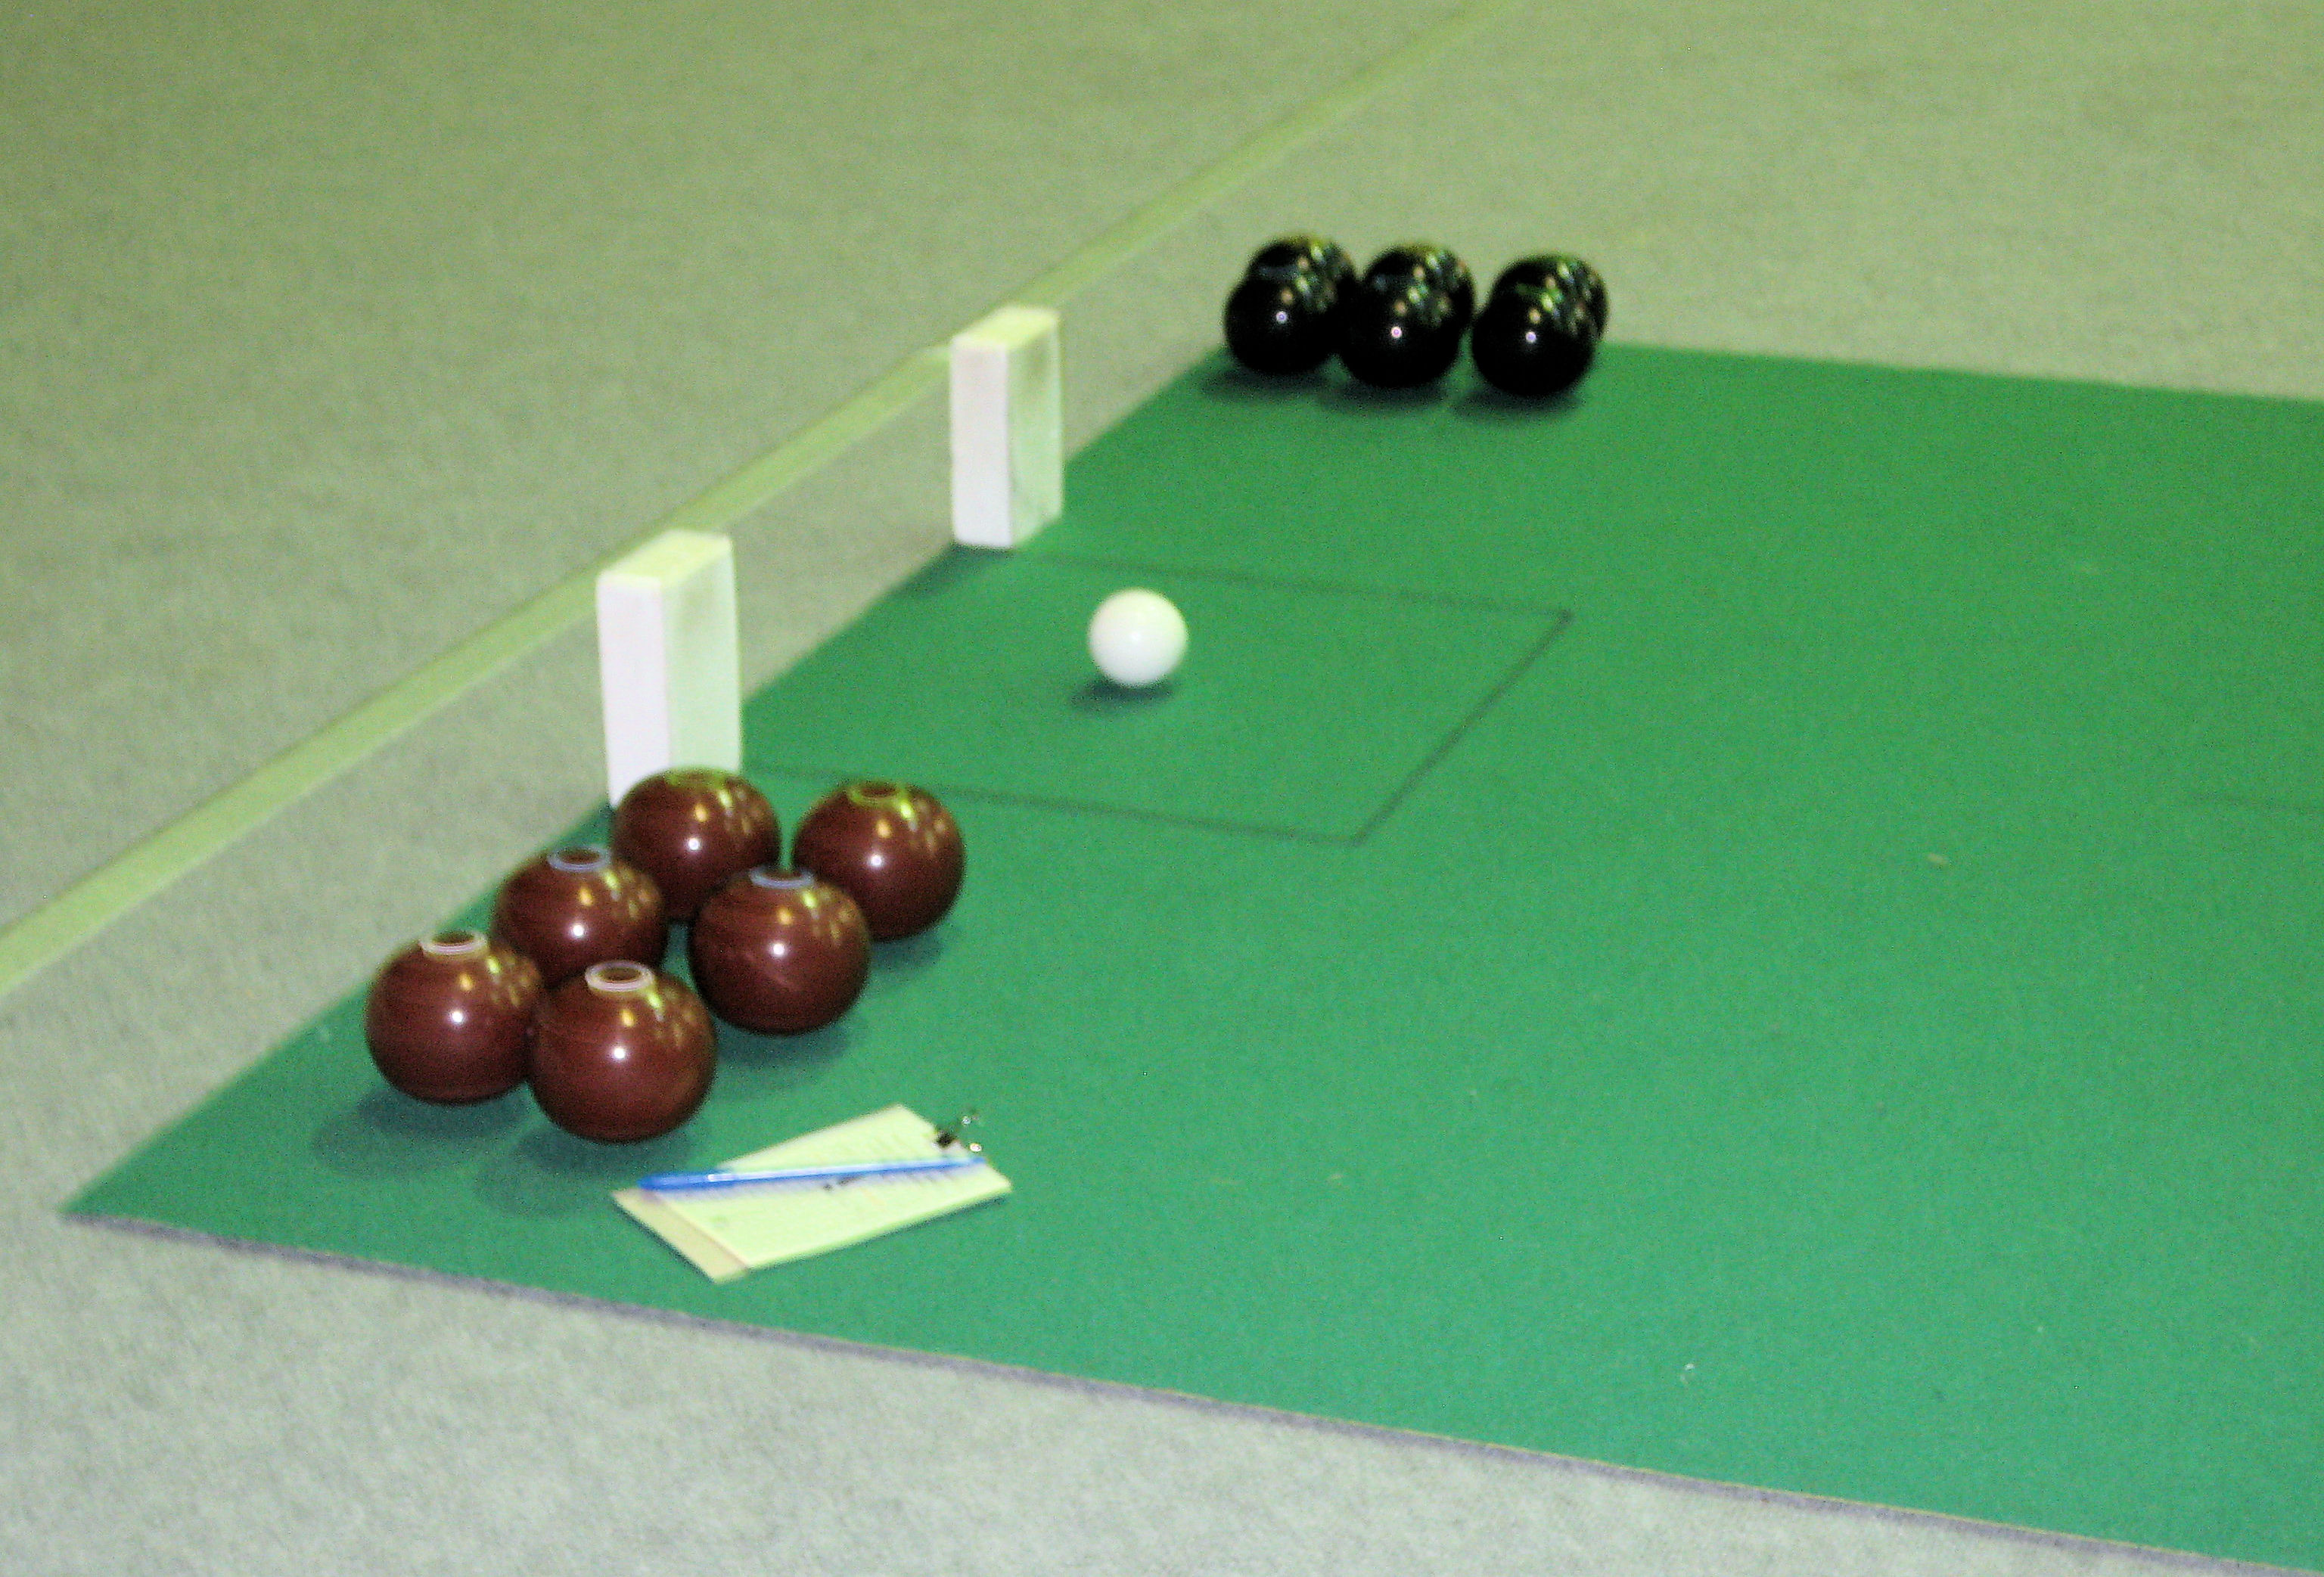 Bias Carpet Bowls _Blacpool 2011_1